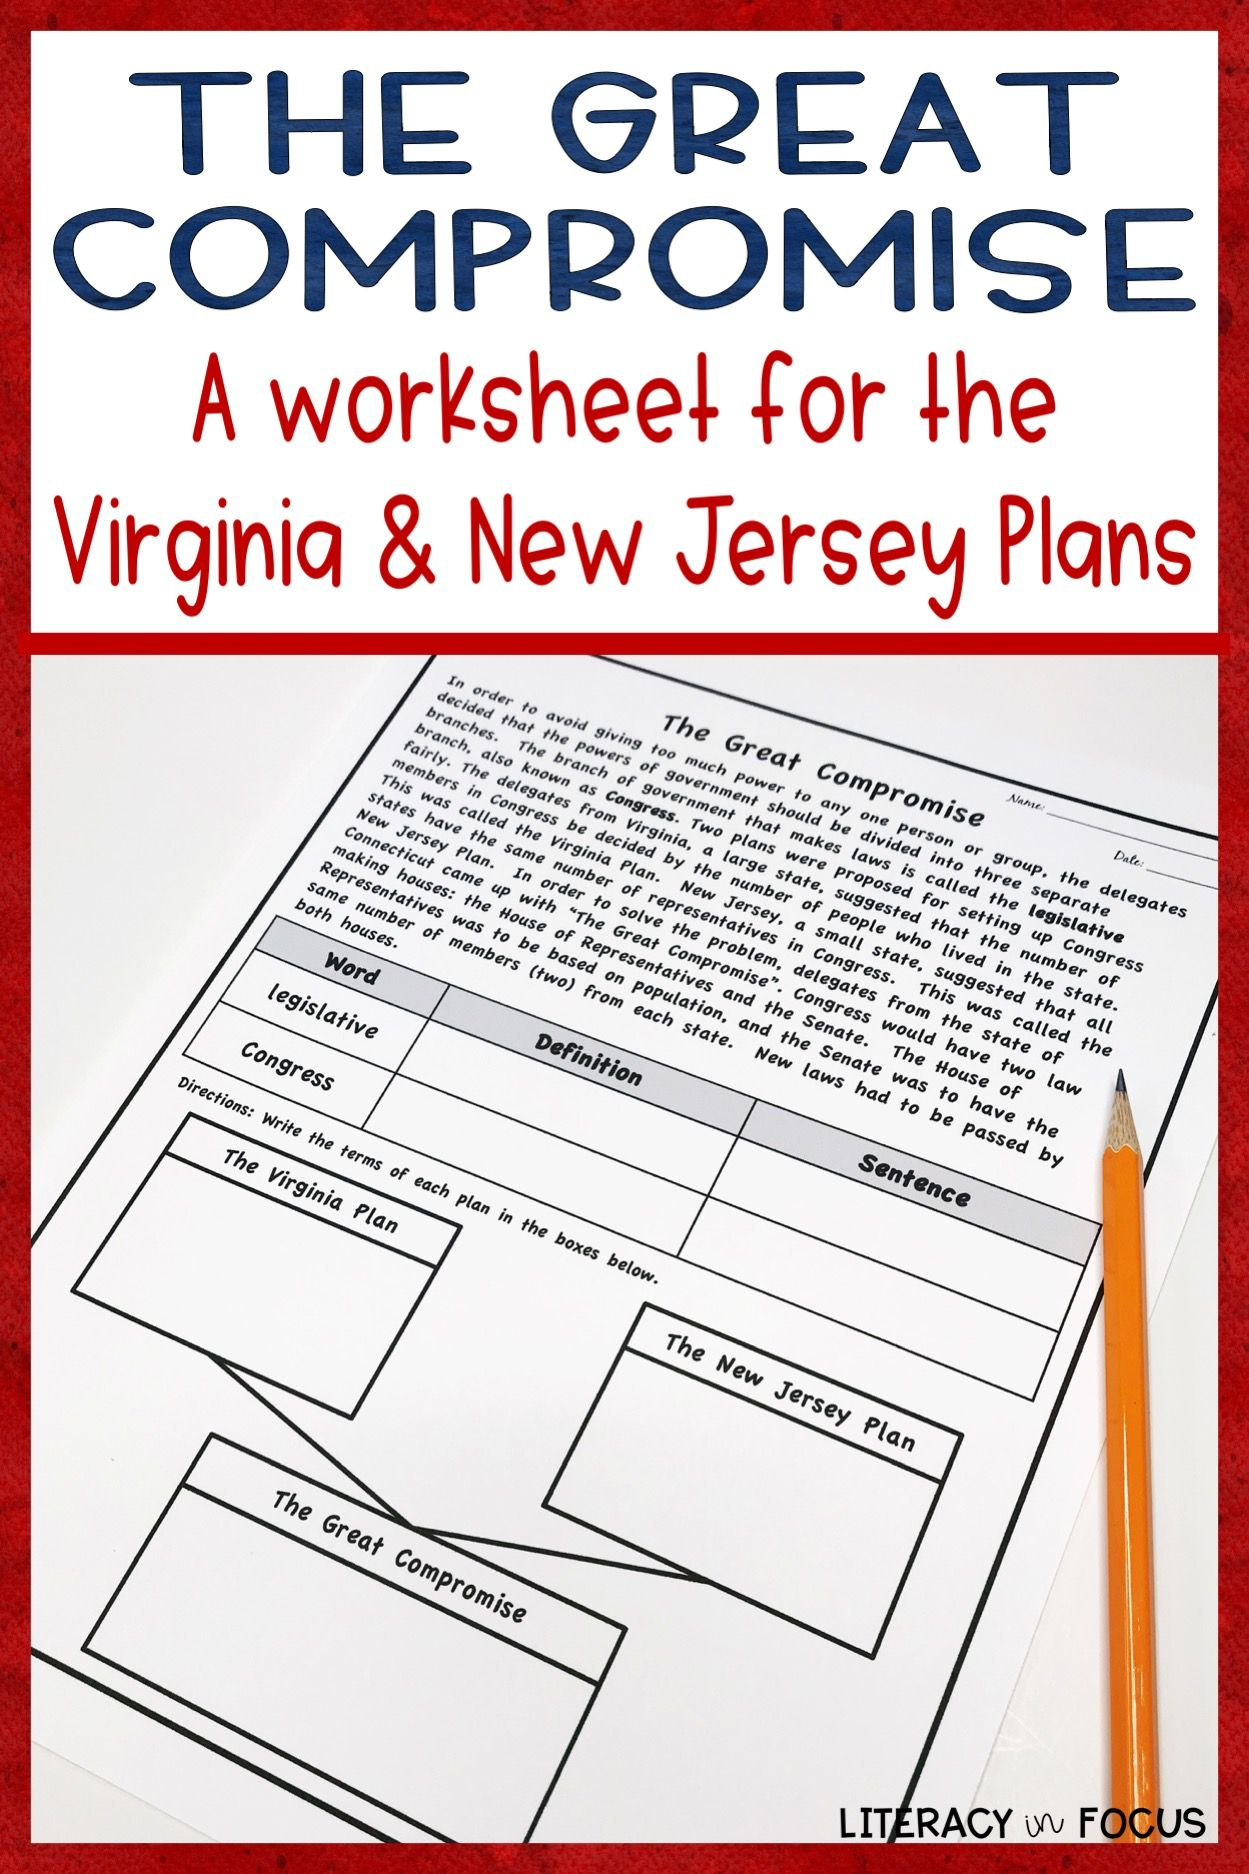 the virginia plan & the new jersey plan: the great compromise | us